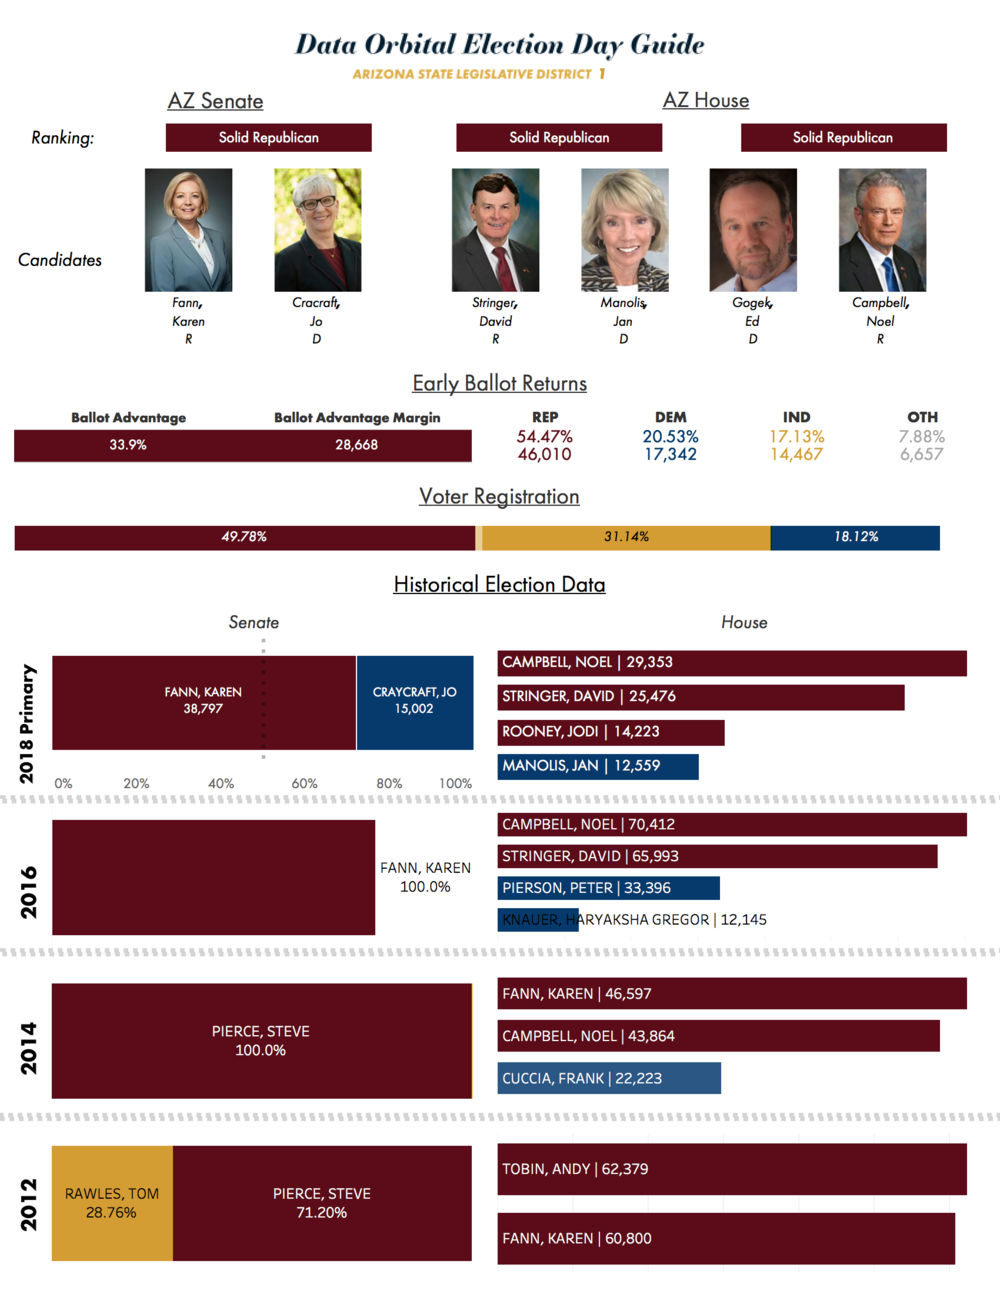 2018 Data Orbital Arizona Legislative District Election Day Guide